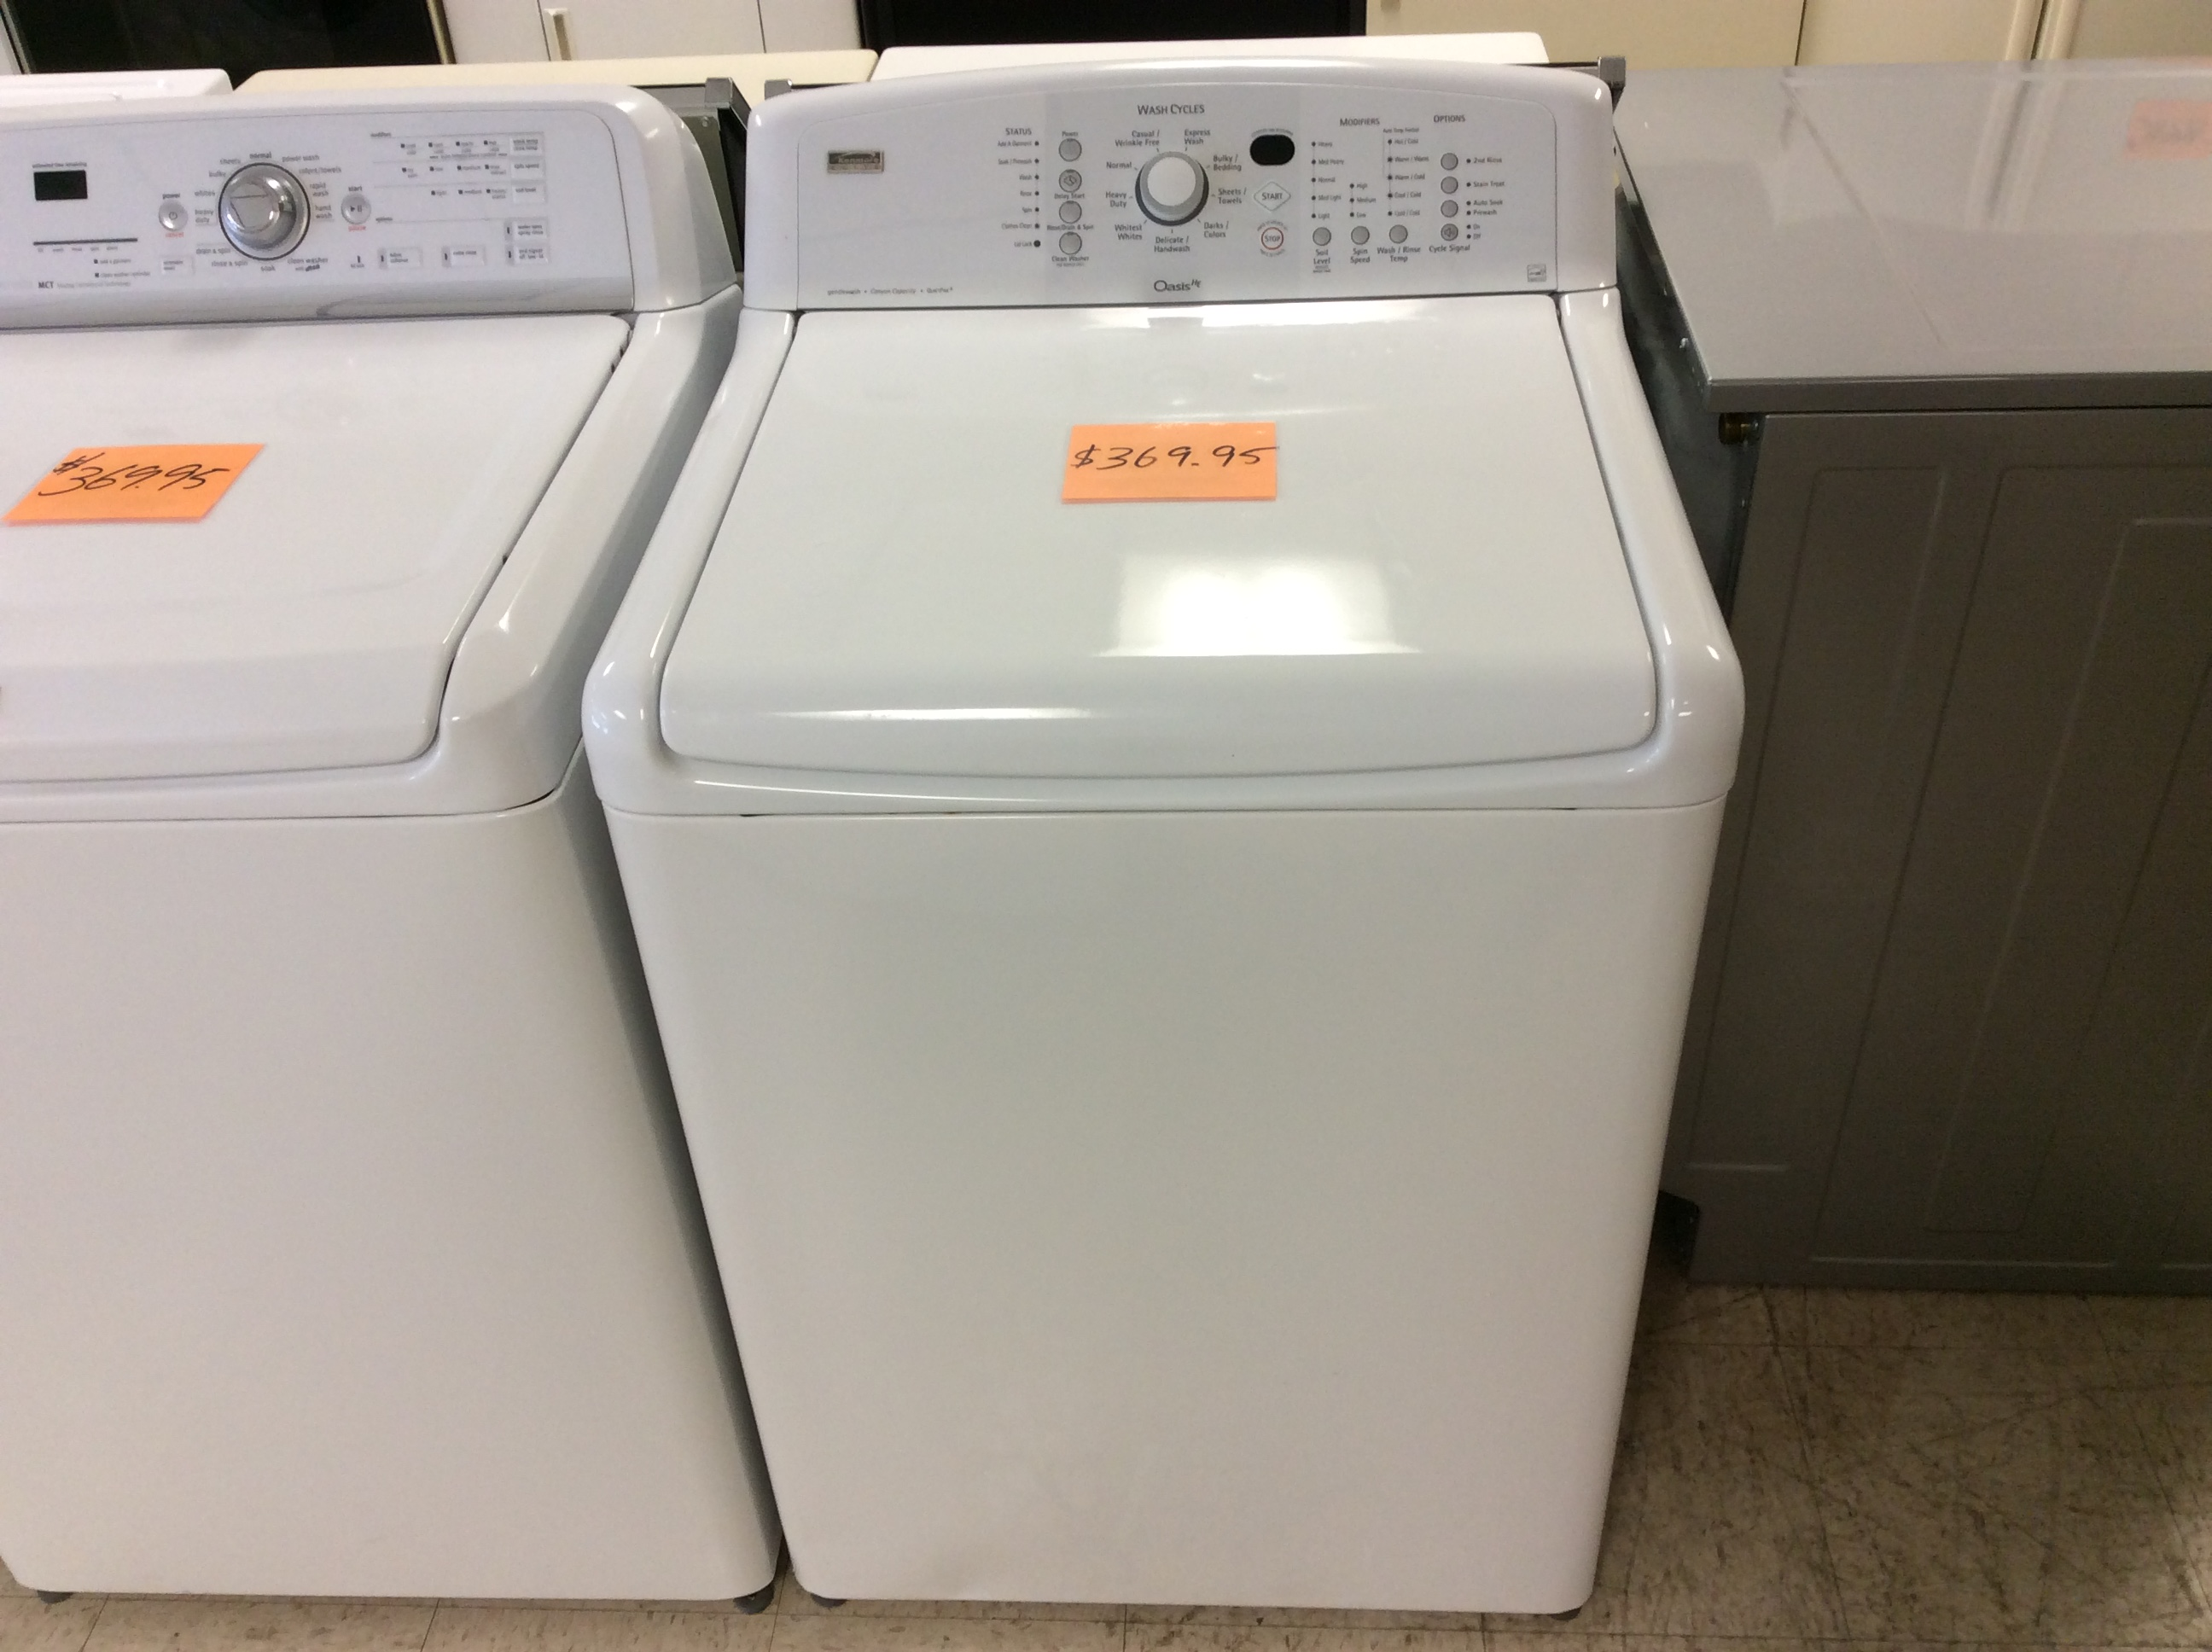 Kenmore Elite Top load washing machine problems Owners Manual